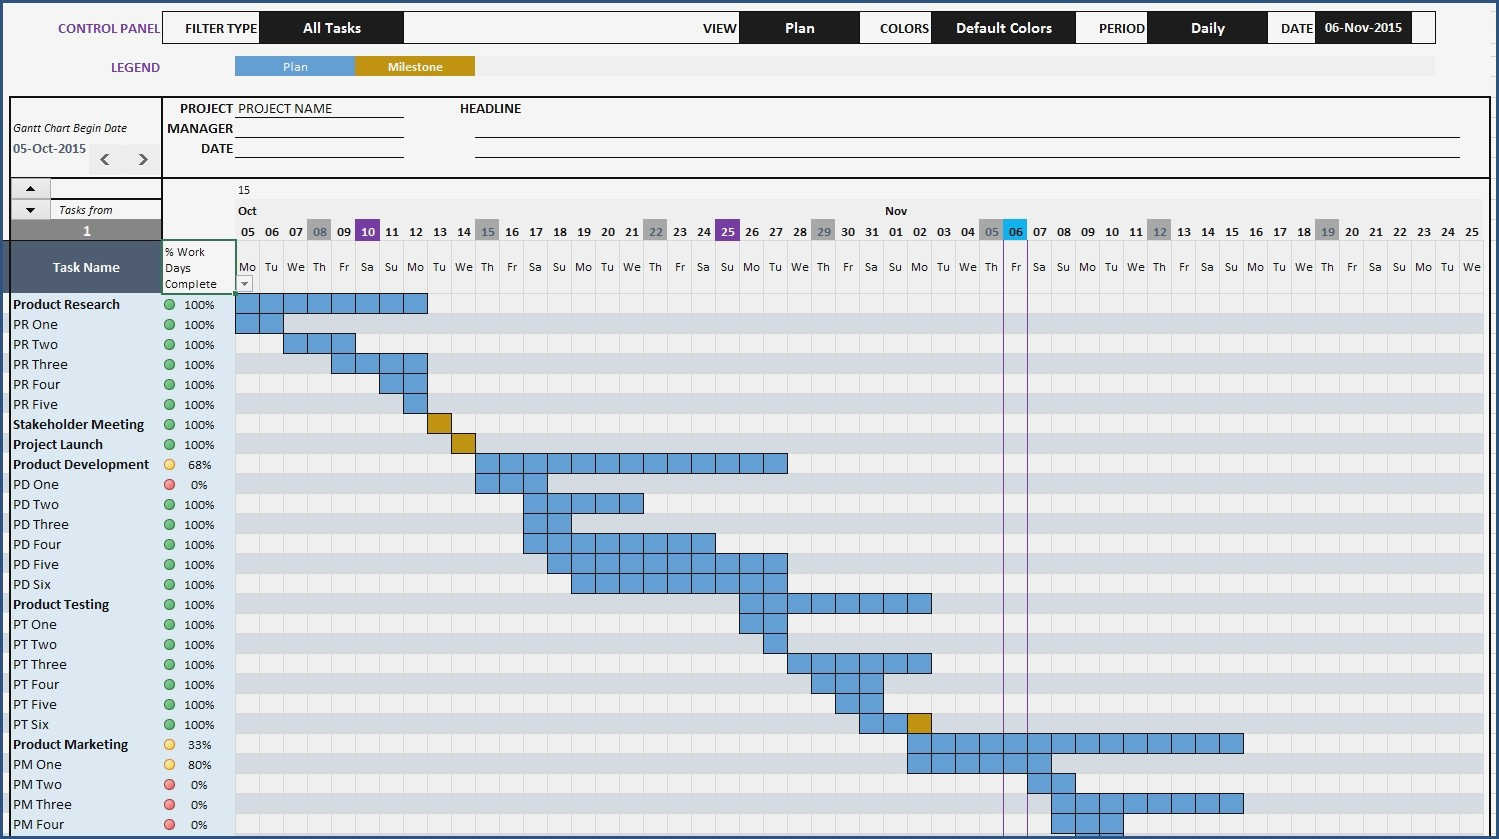 gantt chart template for mac example of spreadshee gantt chart template word mac gantt chart. Black Bedroom Furniture Sets. Home Design Ideas